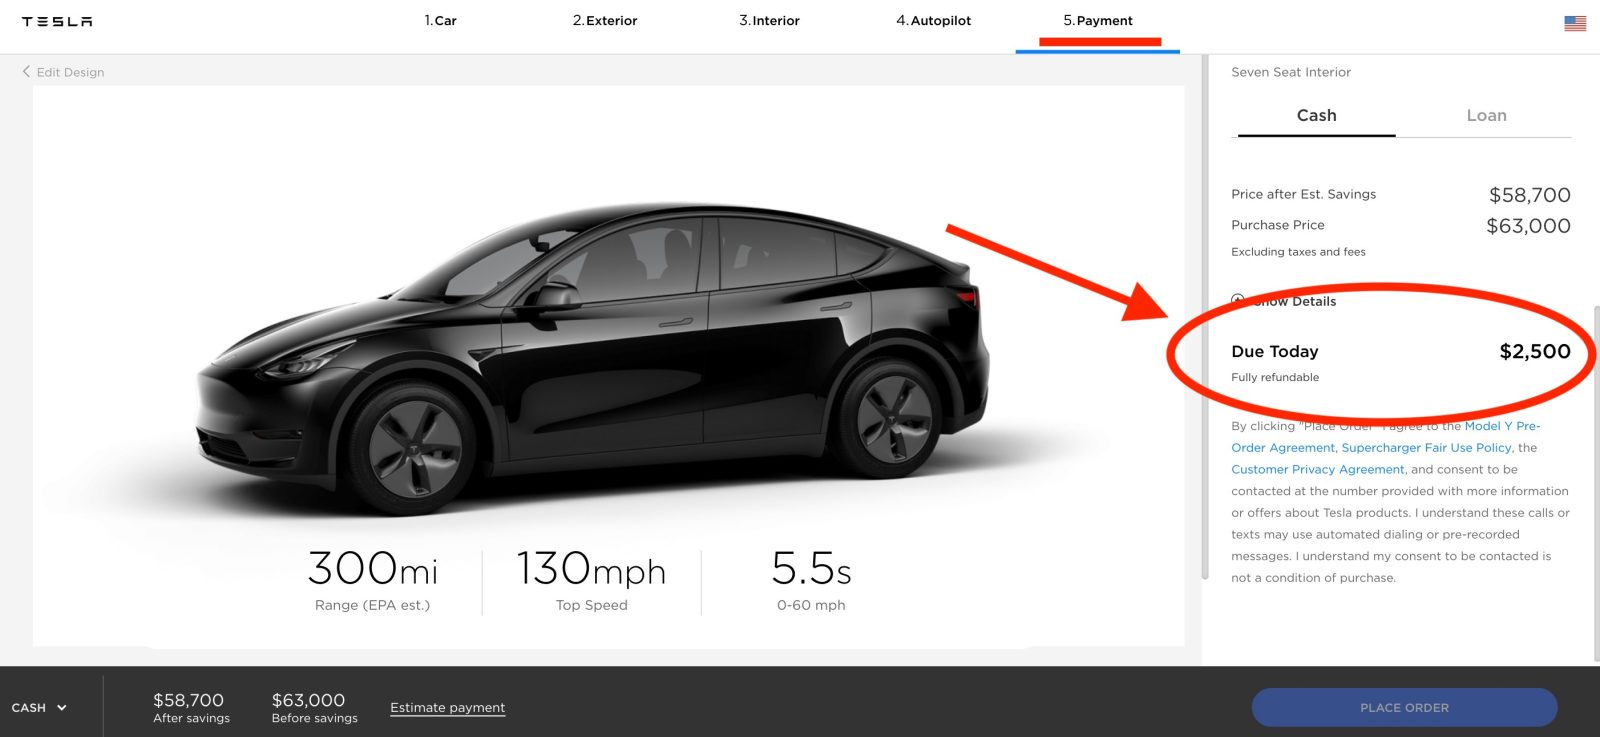 Tesla Model Y: a great electric crossover with questionable rush to open orders